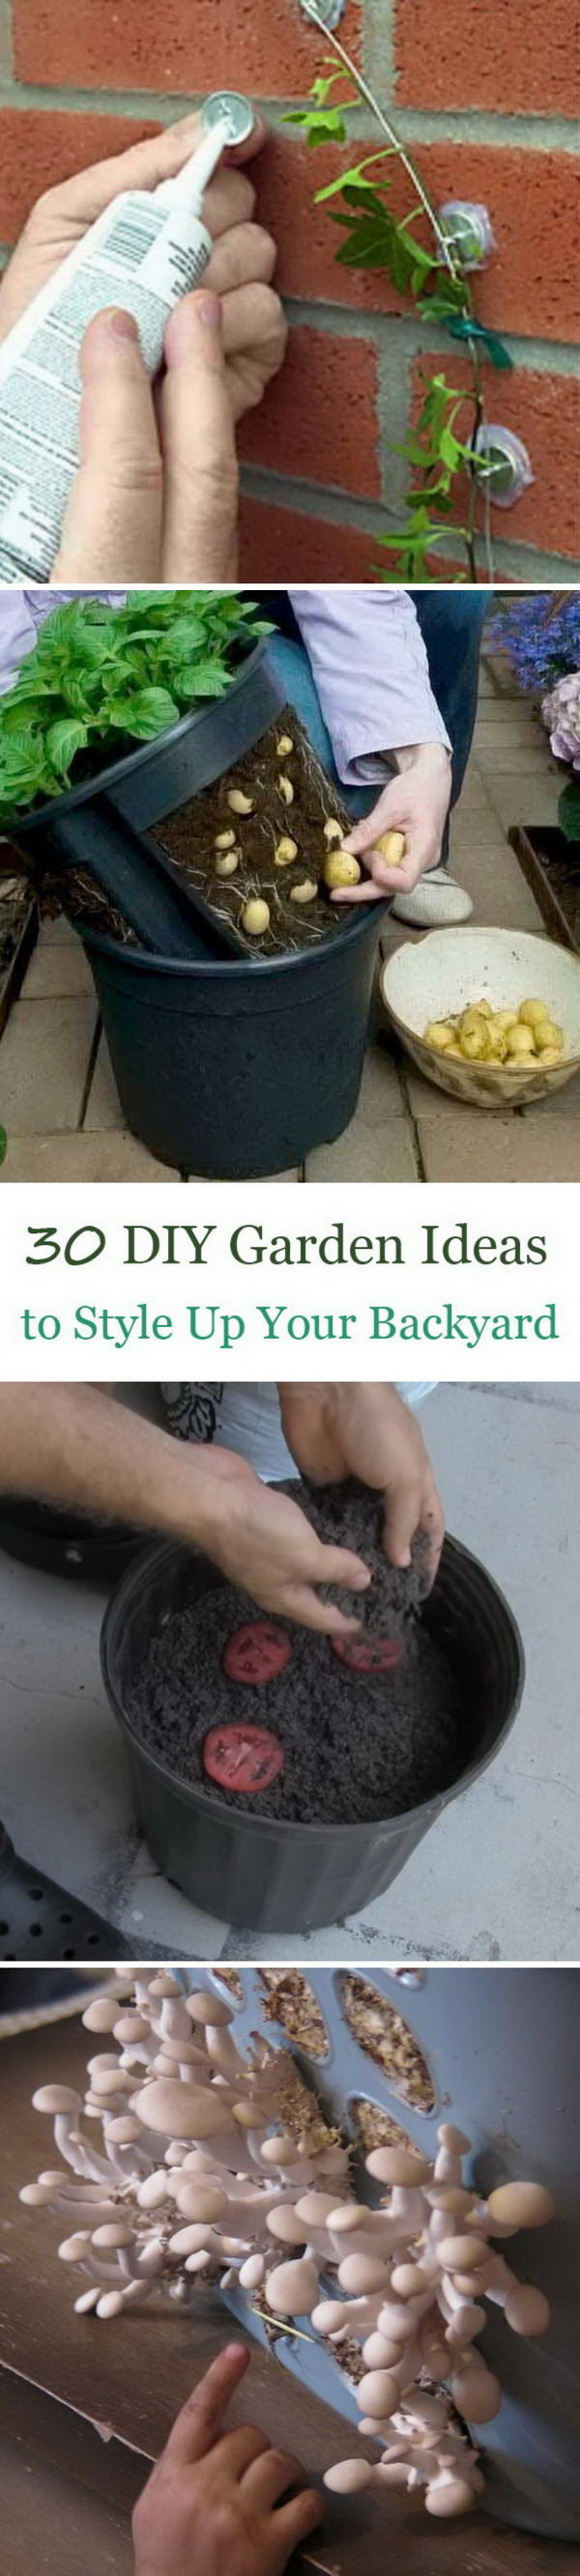 Lots of DIY Garden Ideas to Style Up Your Backyard to The Next Level.